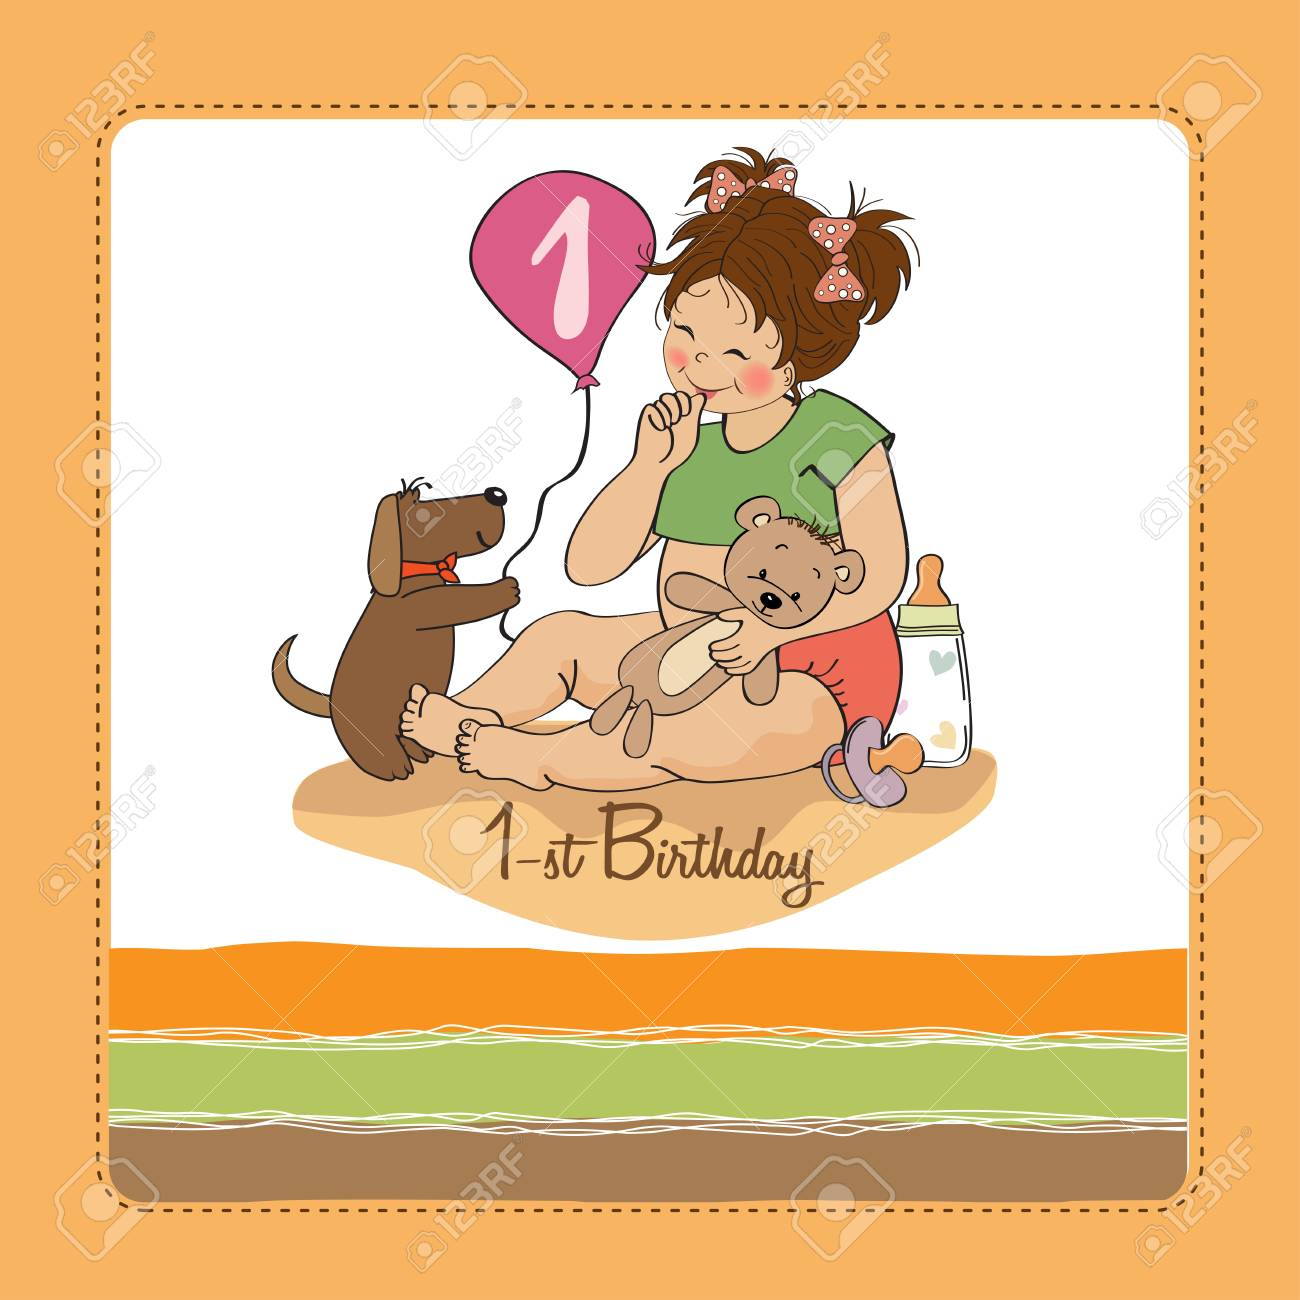 little girl at her first birthday, vector illustration Stock Vector - 18401091